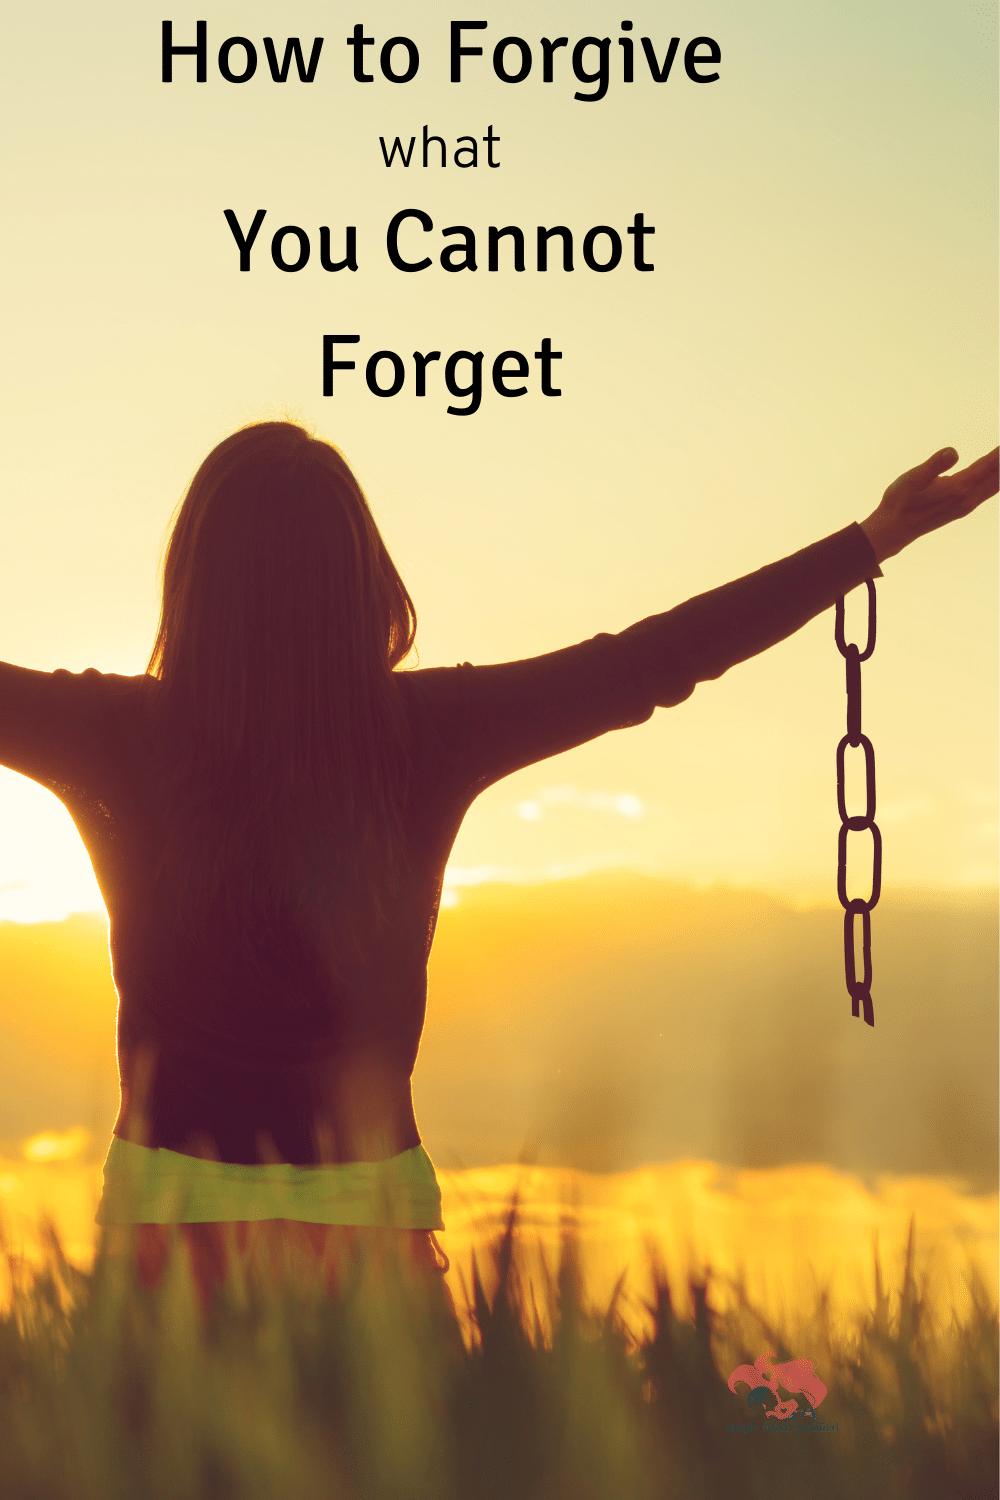 How to Forgive your Domestic abuser